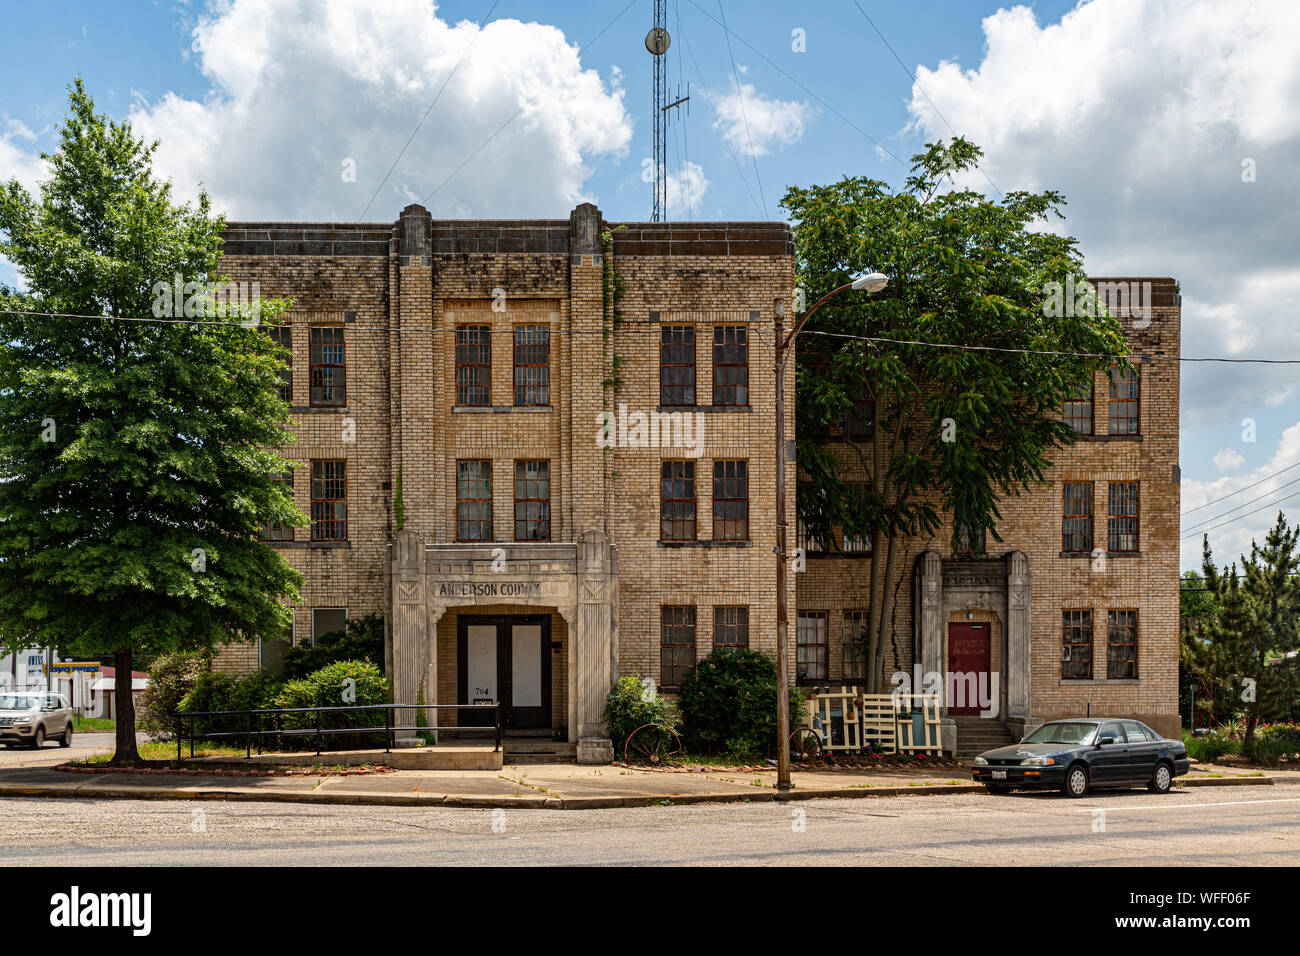 The historic Anderson county courthouse in Palestine, Texas.  It was built in 1914 and is on the National Register of Historic Places Stock Photo